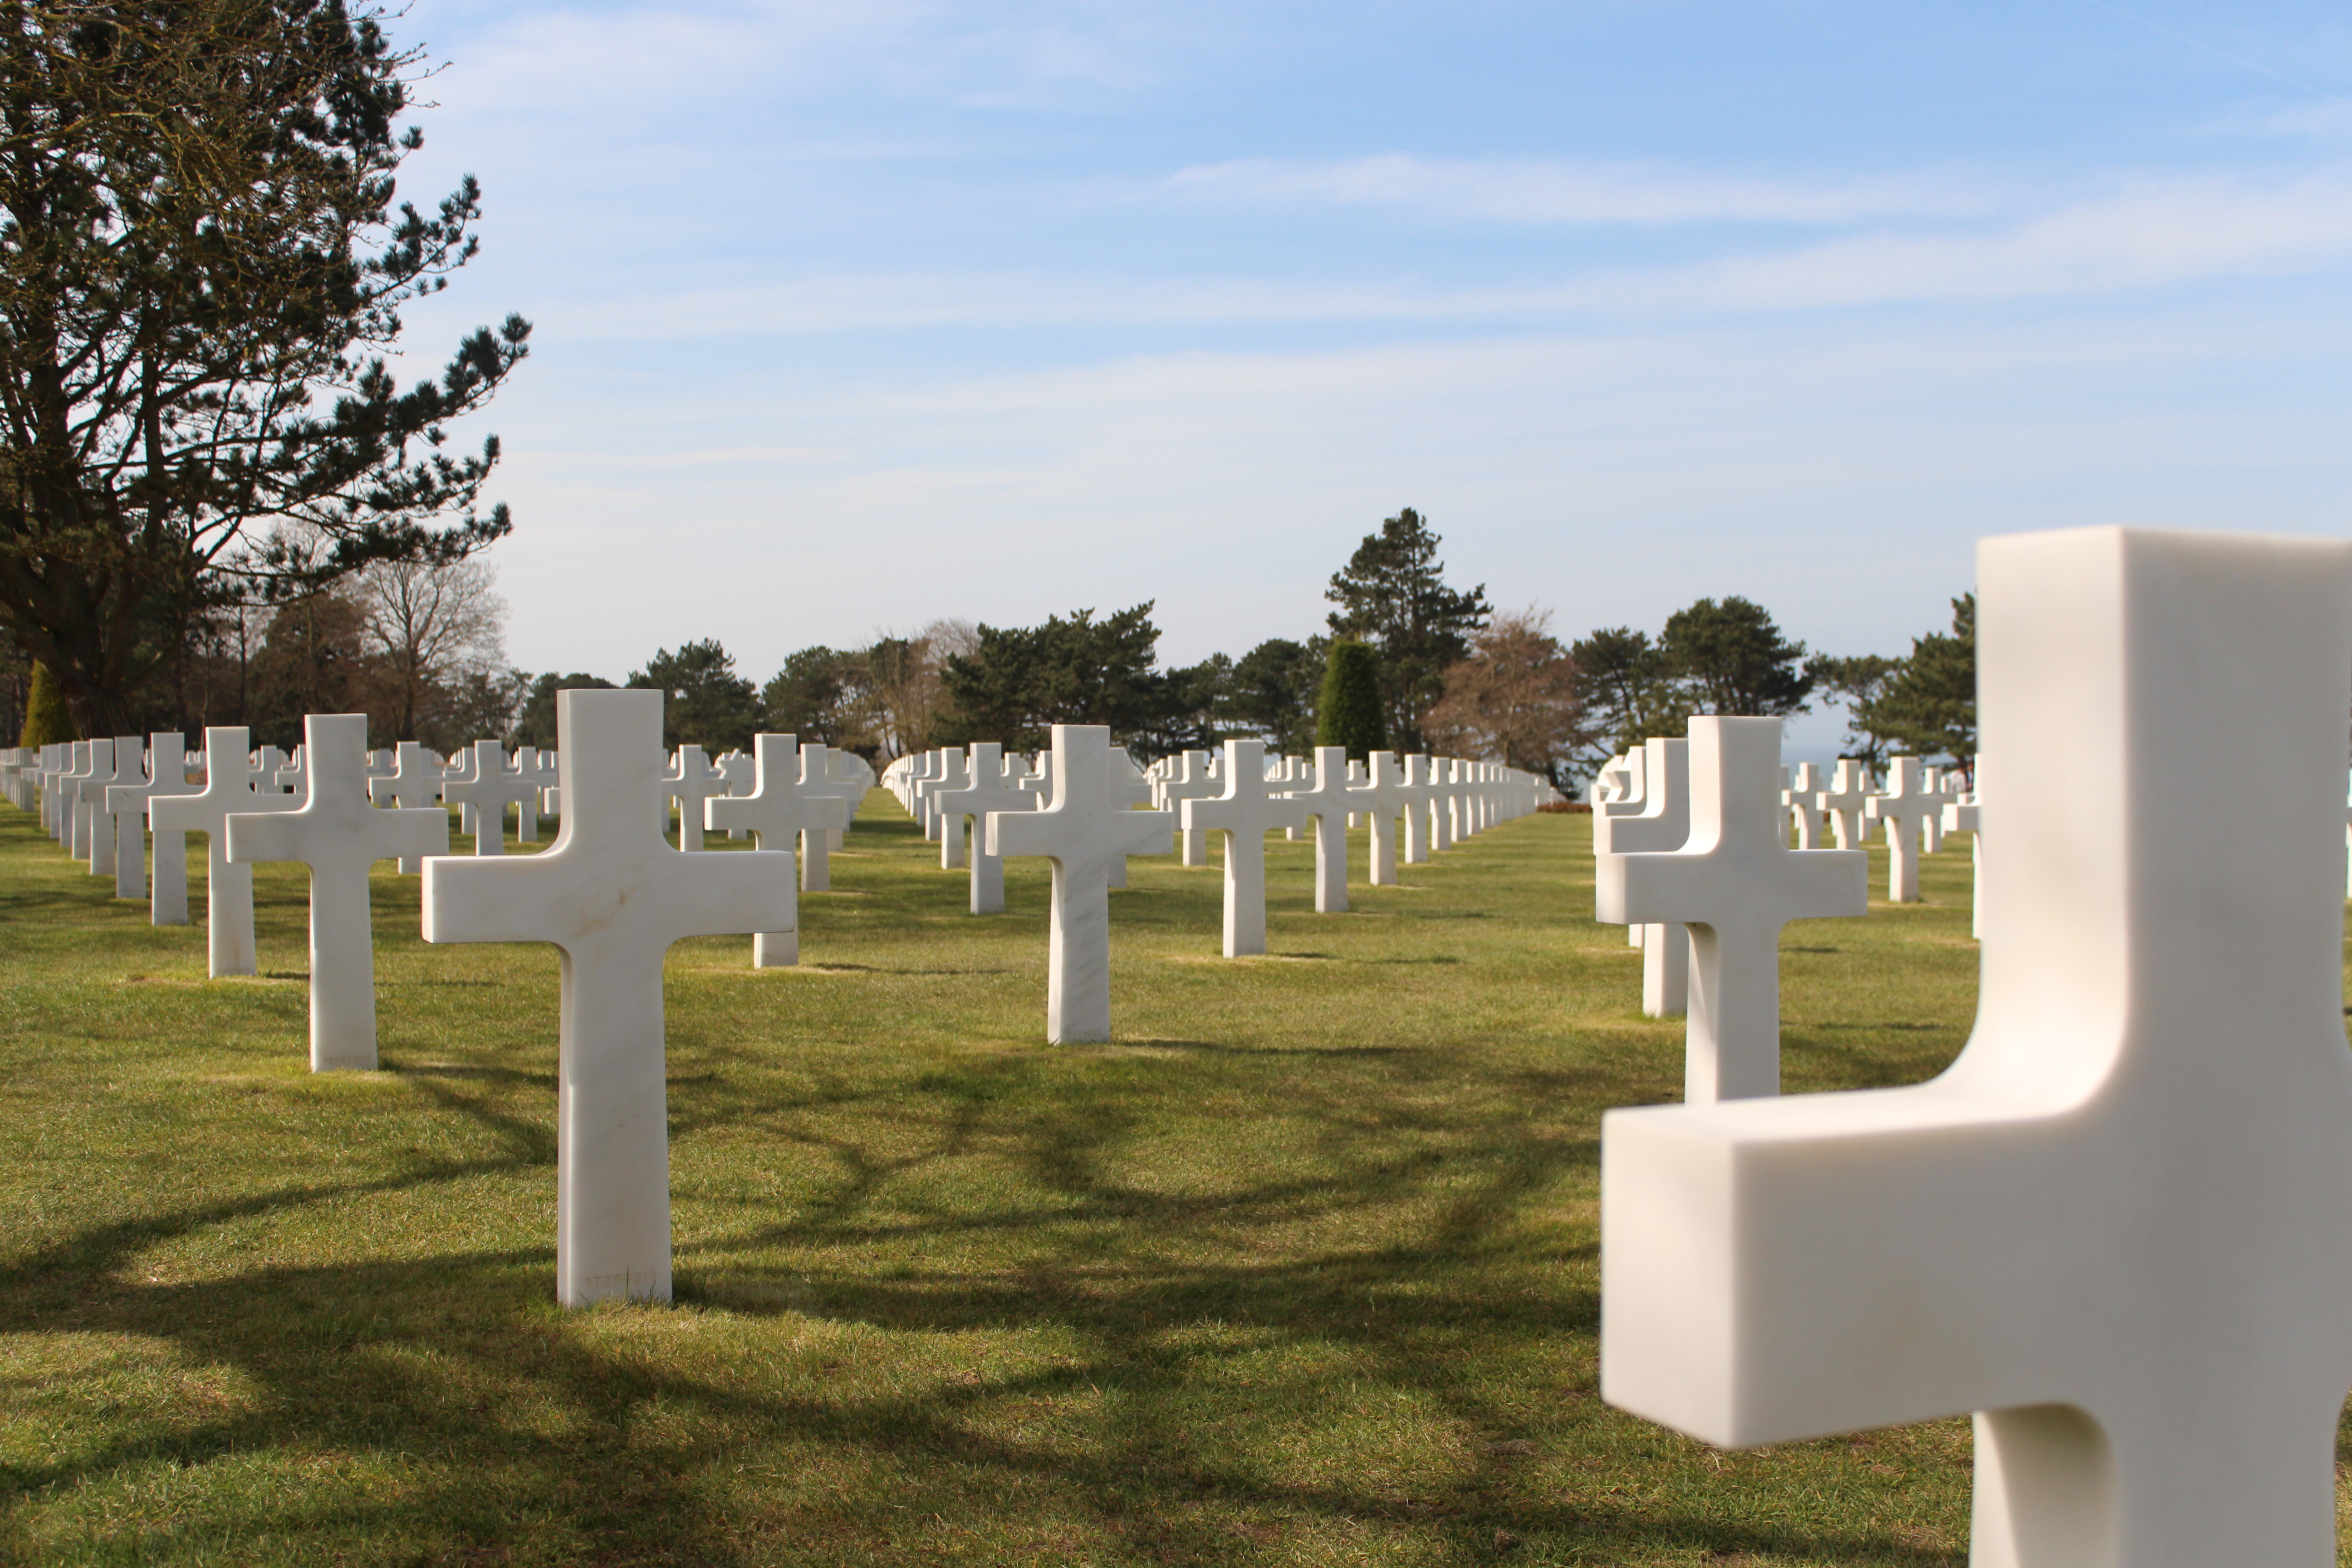 American cemetery showing neat diagonal rows of white crosses on a freshly mown lawn.